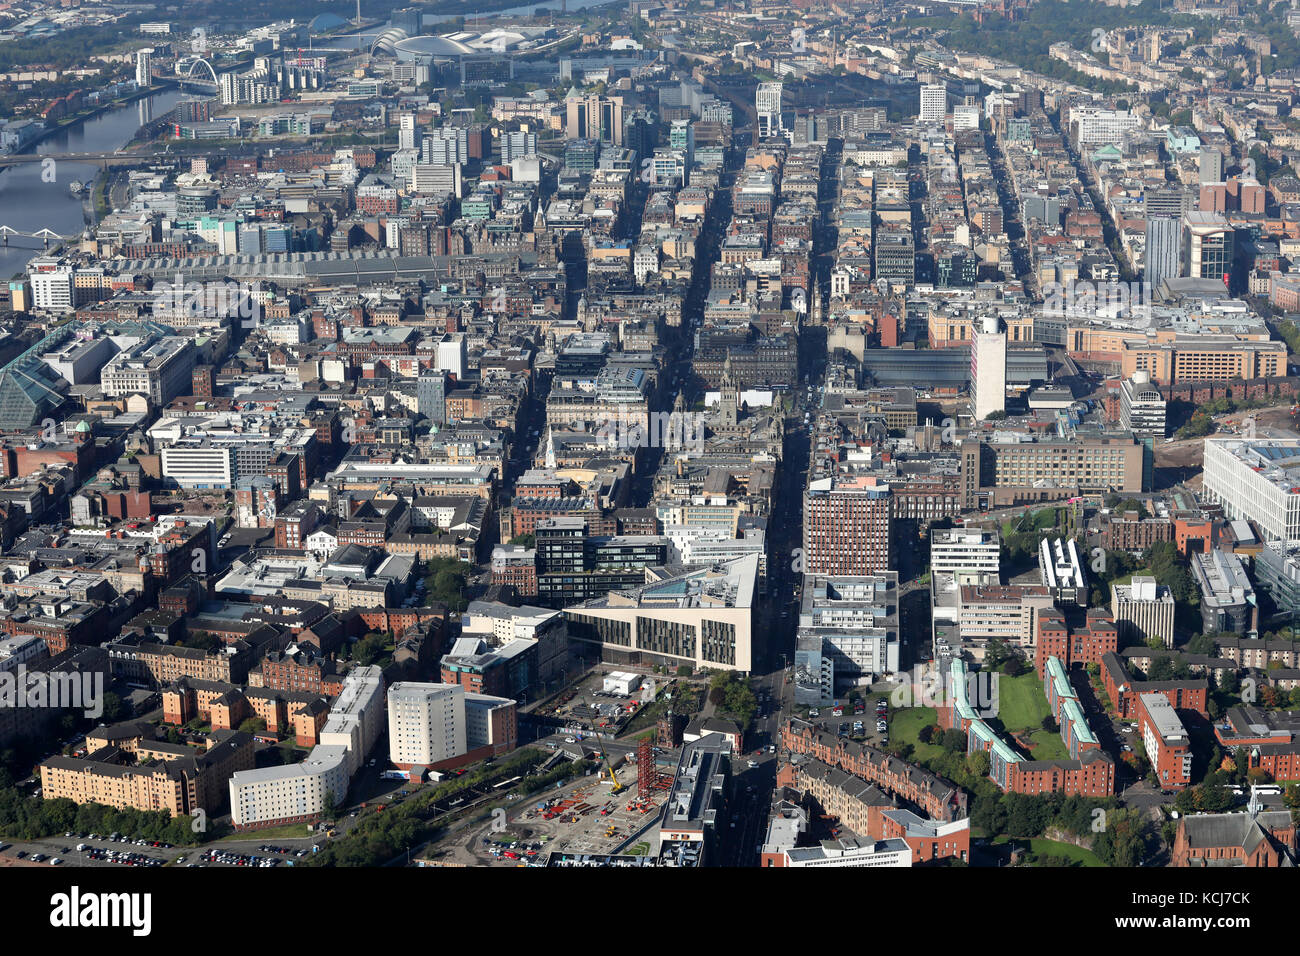 aerial view of the Glasgow city centre skyline looking down George Street, Scotland, UK - Stock Image